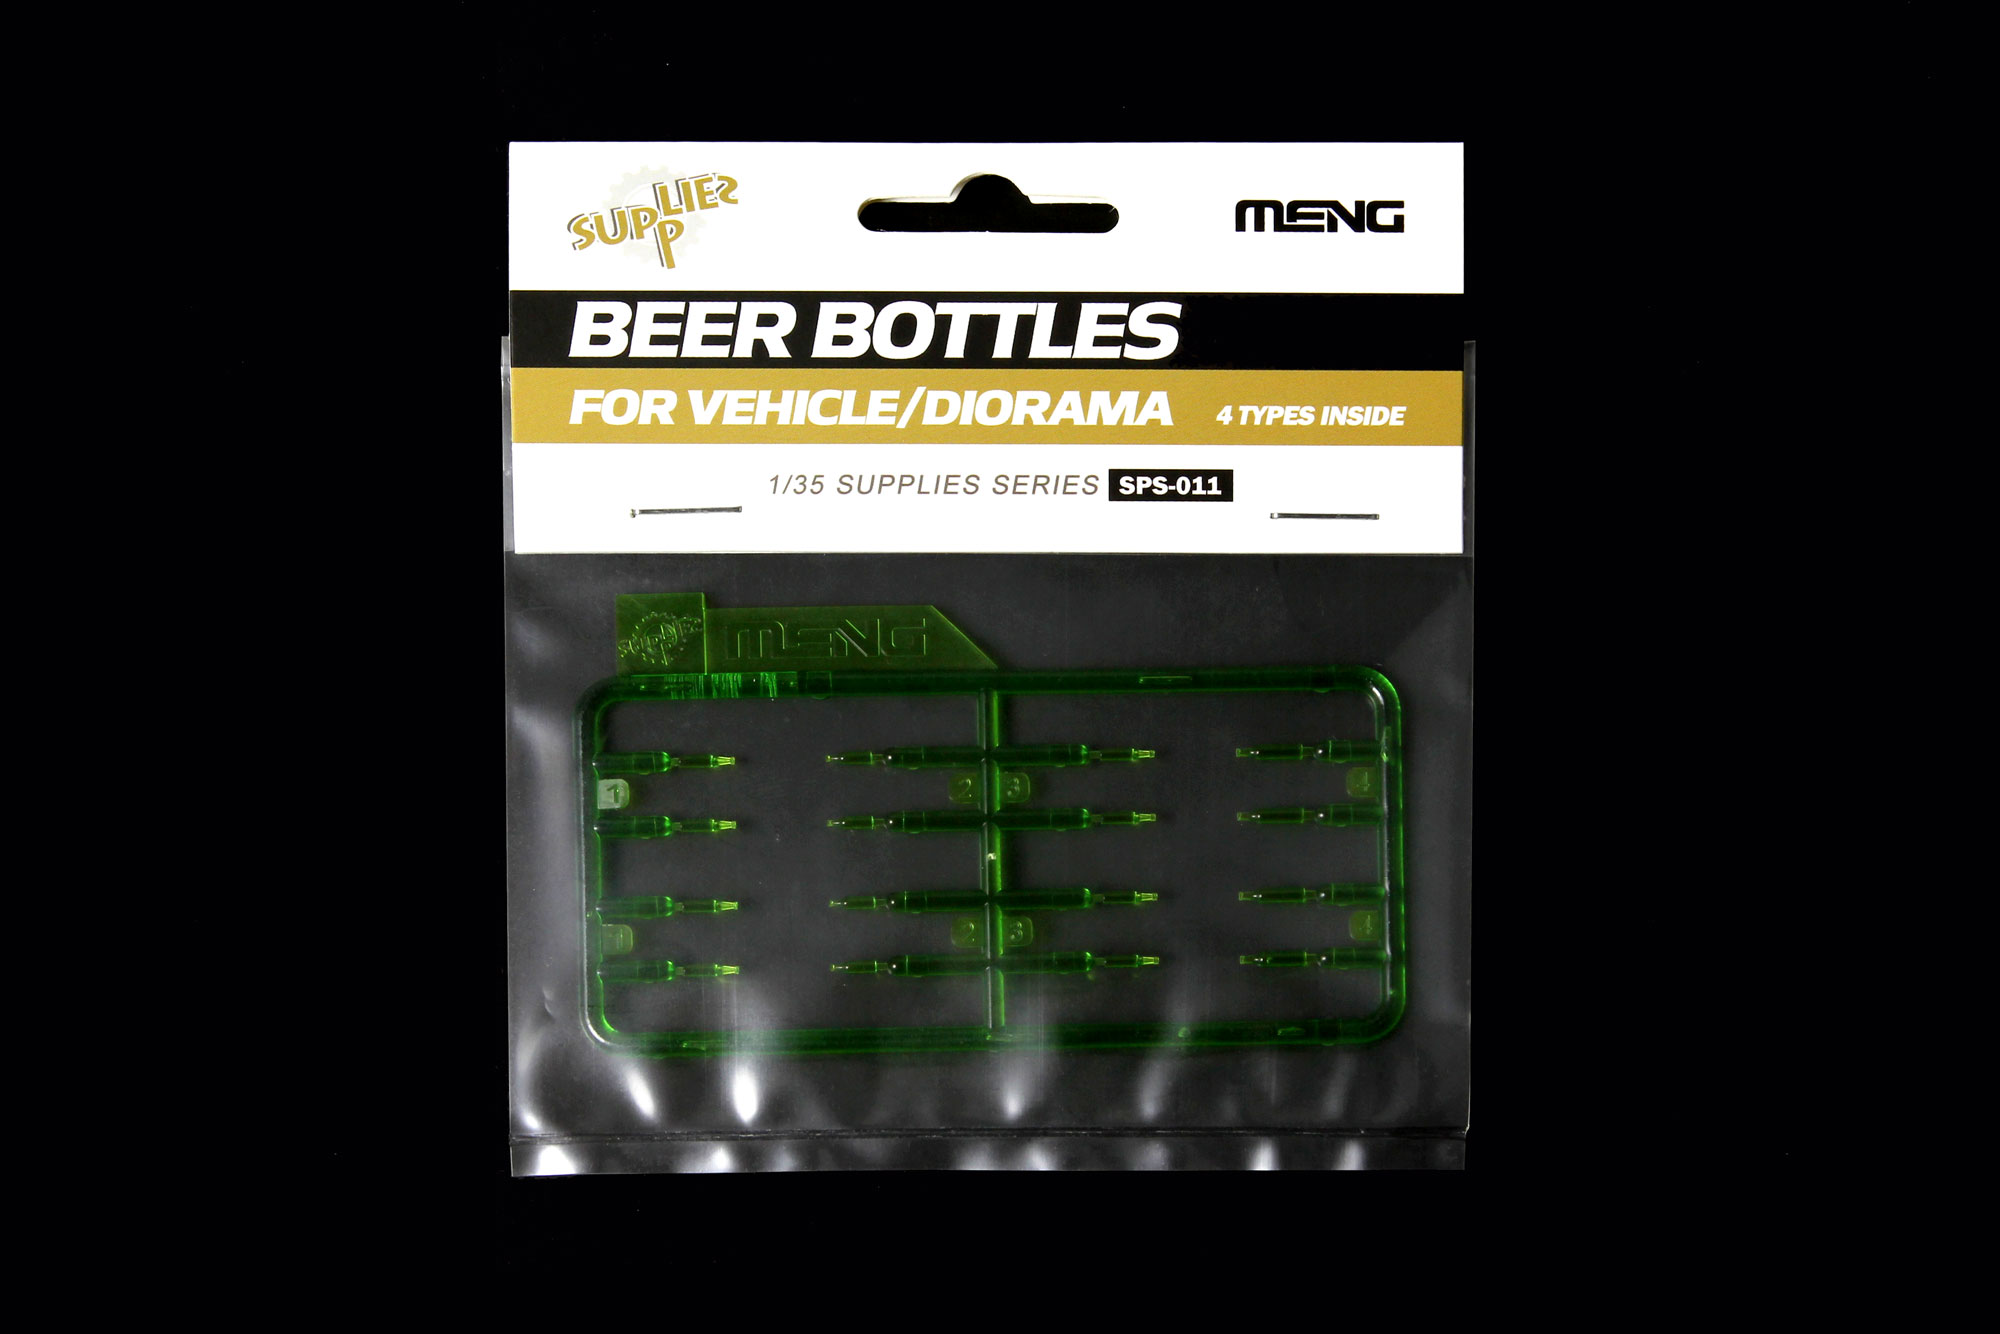 Meng 1/35 Beer Bottles for Vehicle/Diorama